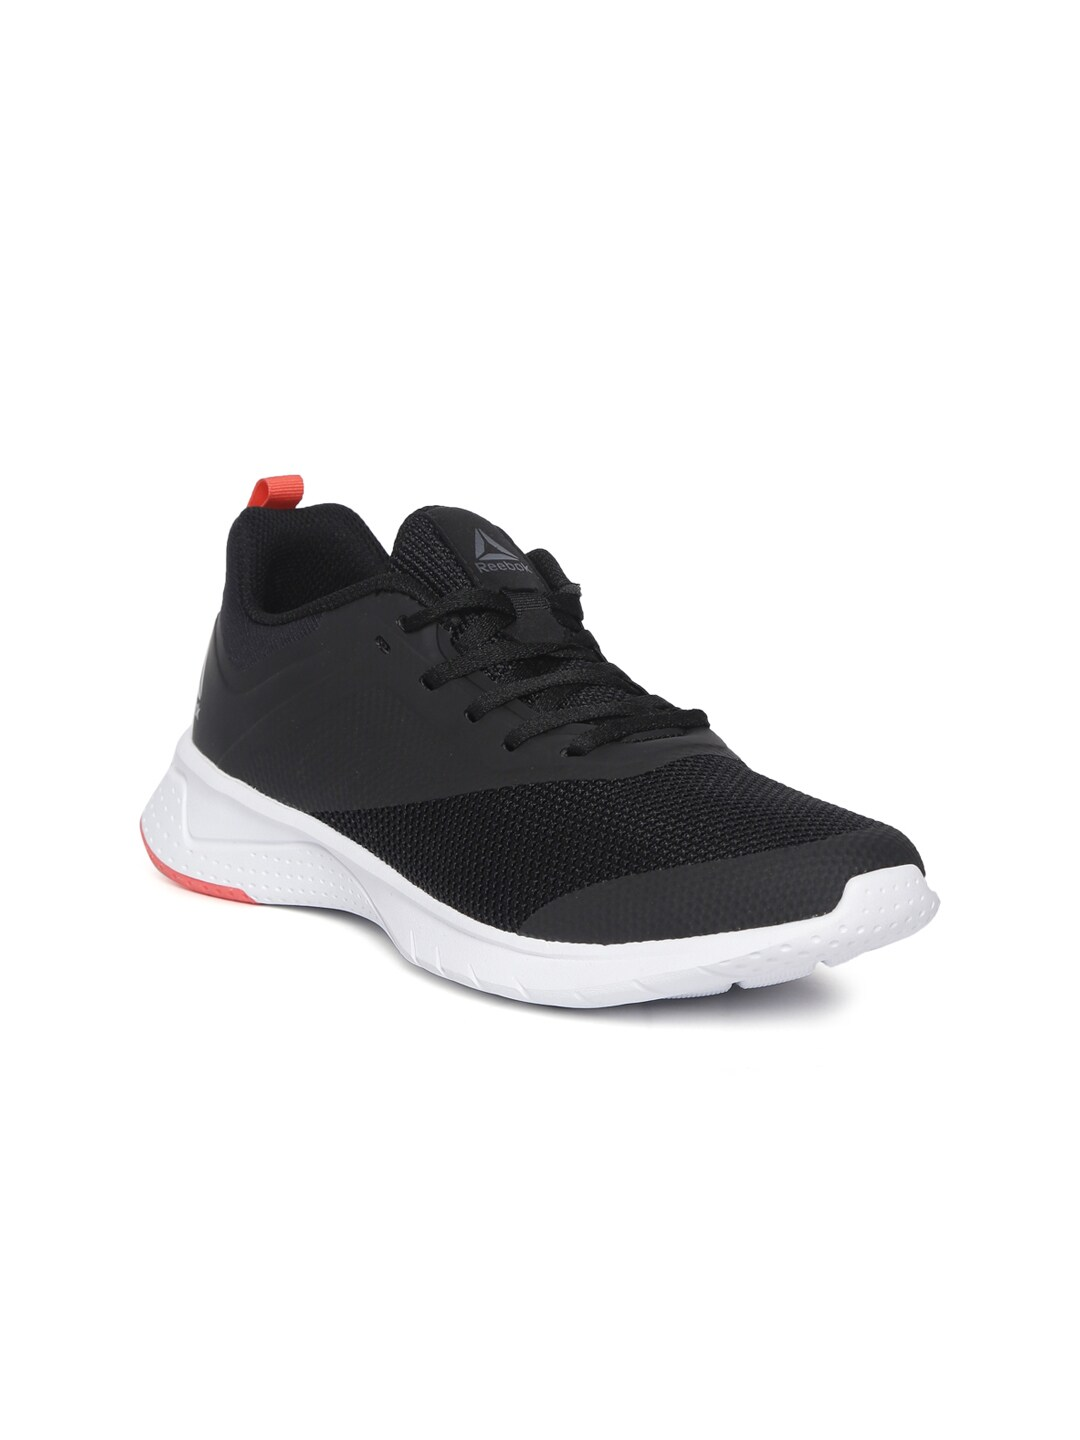 newest 1f6b9 9950f Sports Shoes for Women - Buy Women Sports Shoes Online   Myntra